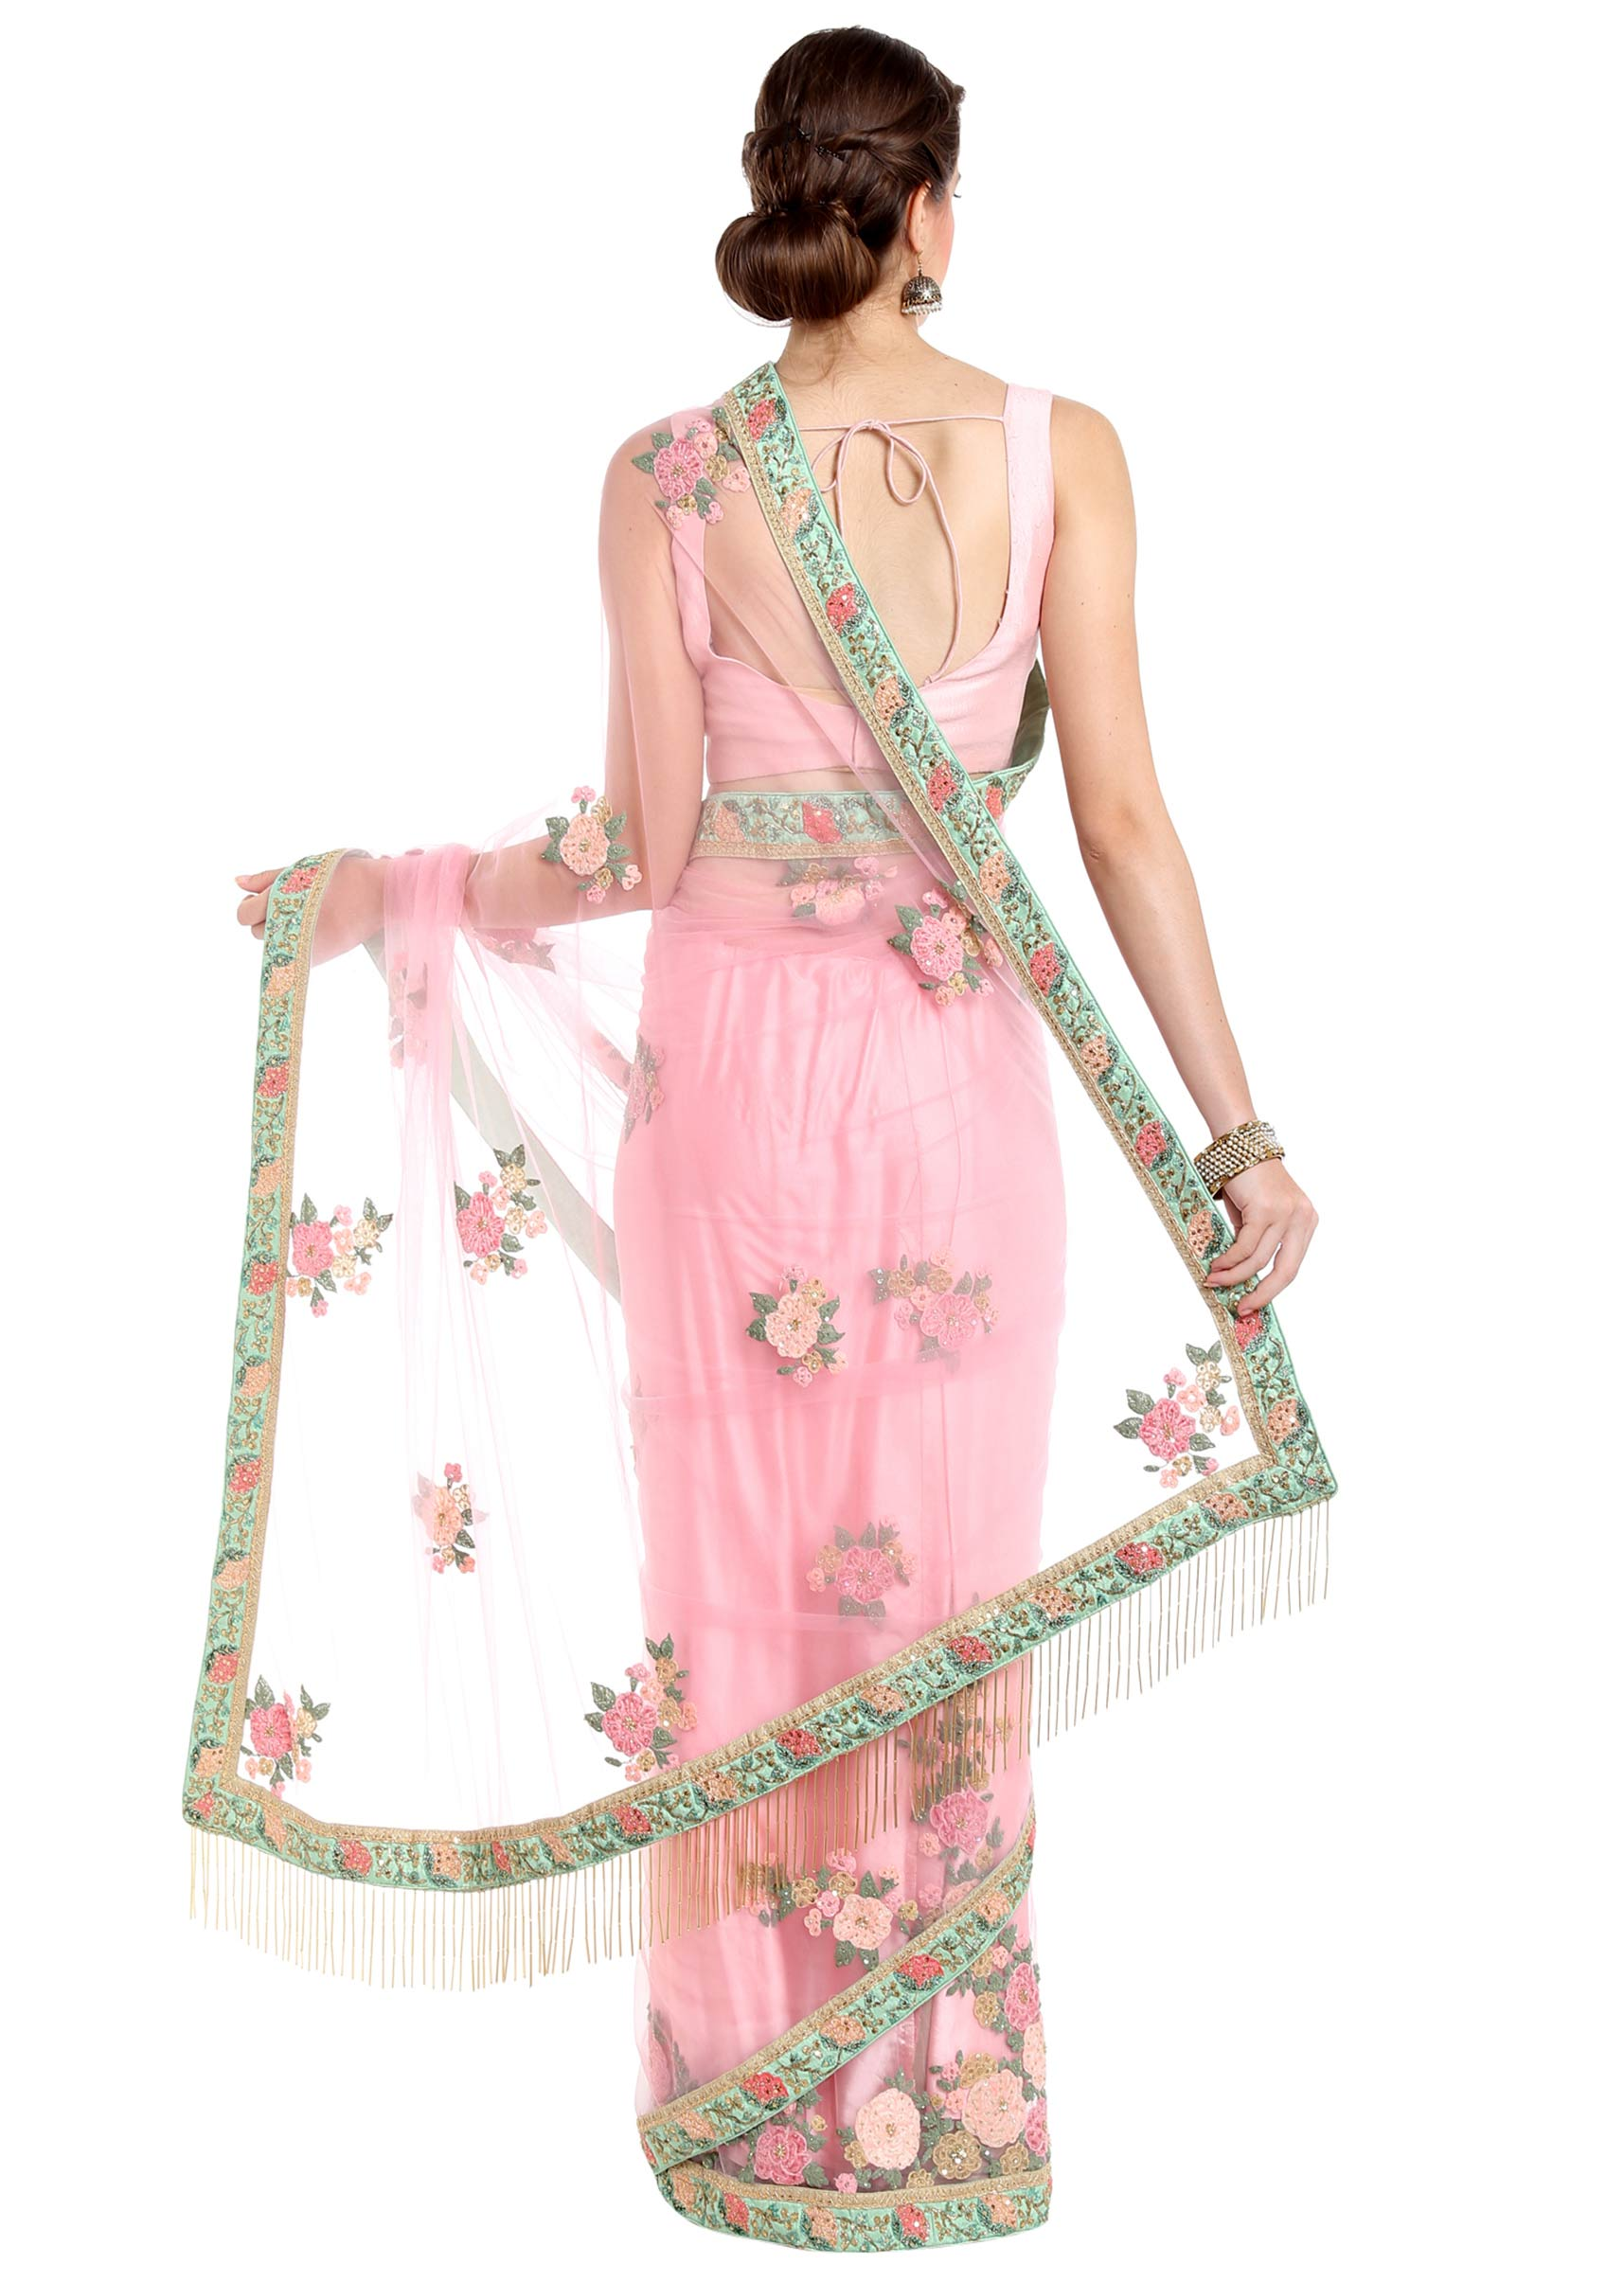 33339466440fa Powder pink saree in flower patch work embroidery only on Kalki